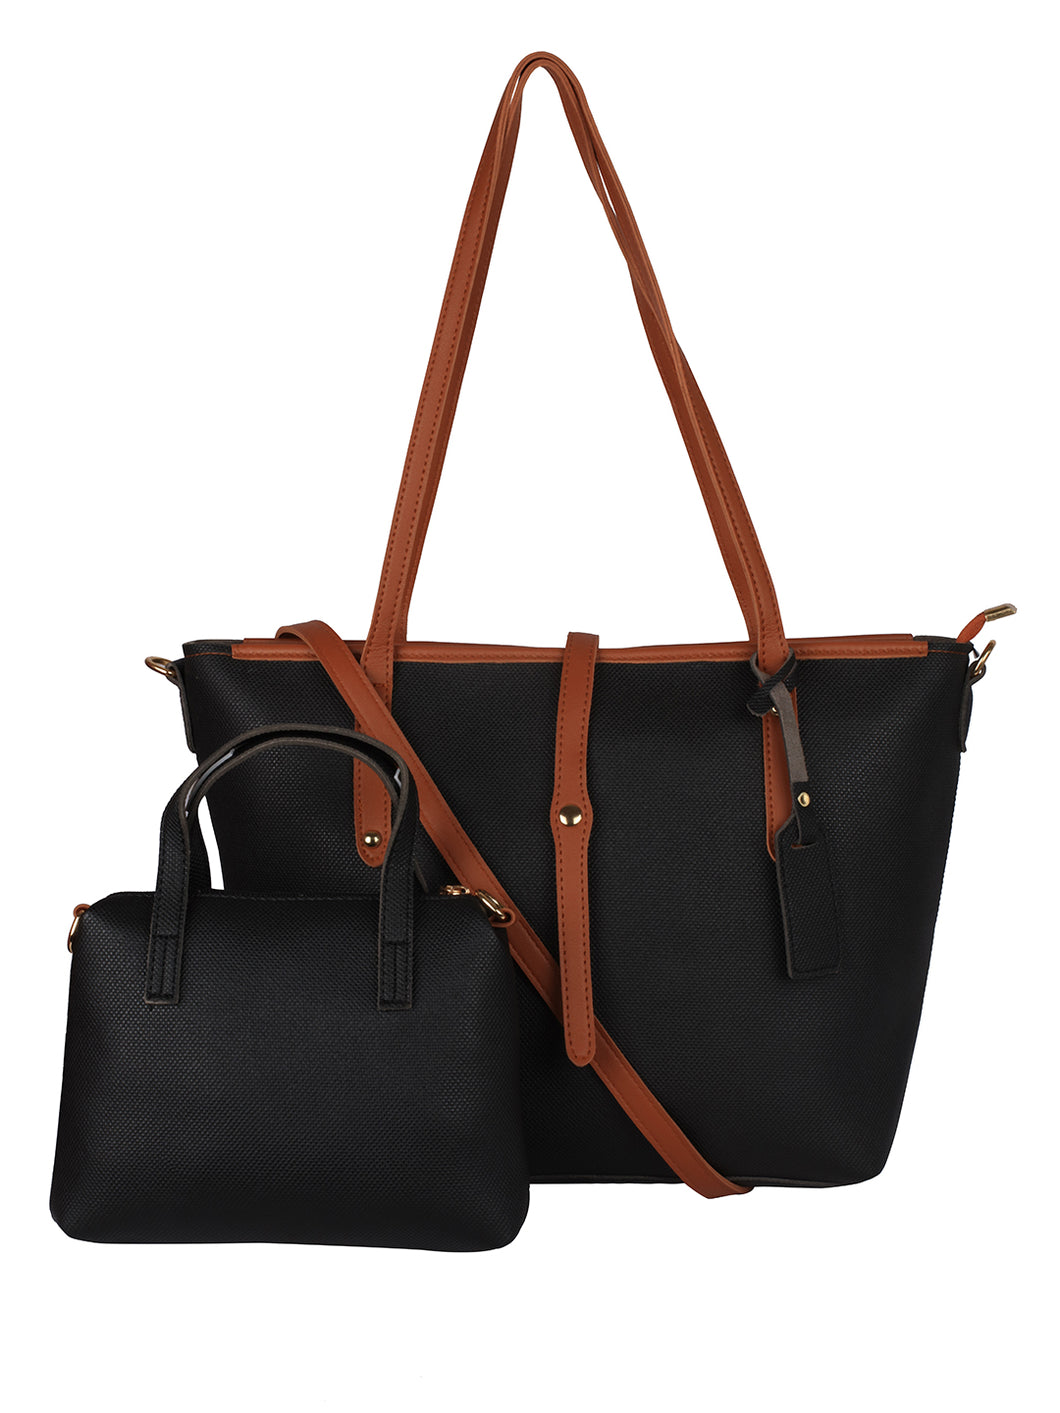 Basic Dual Tone Tote - Black